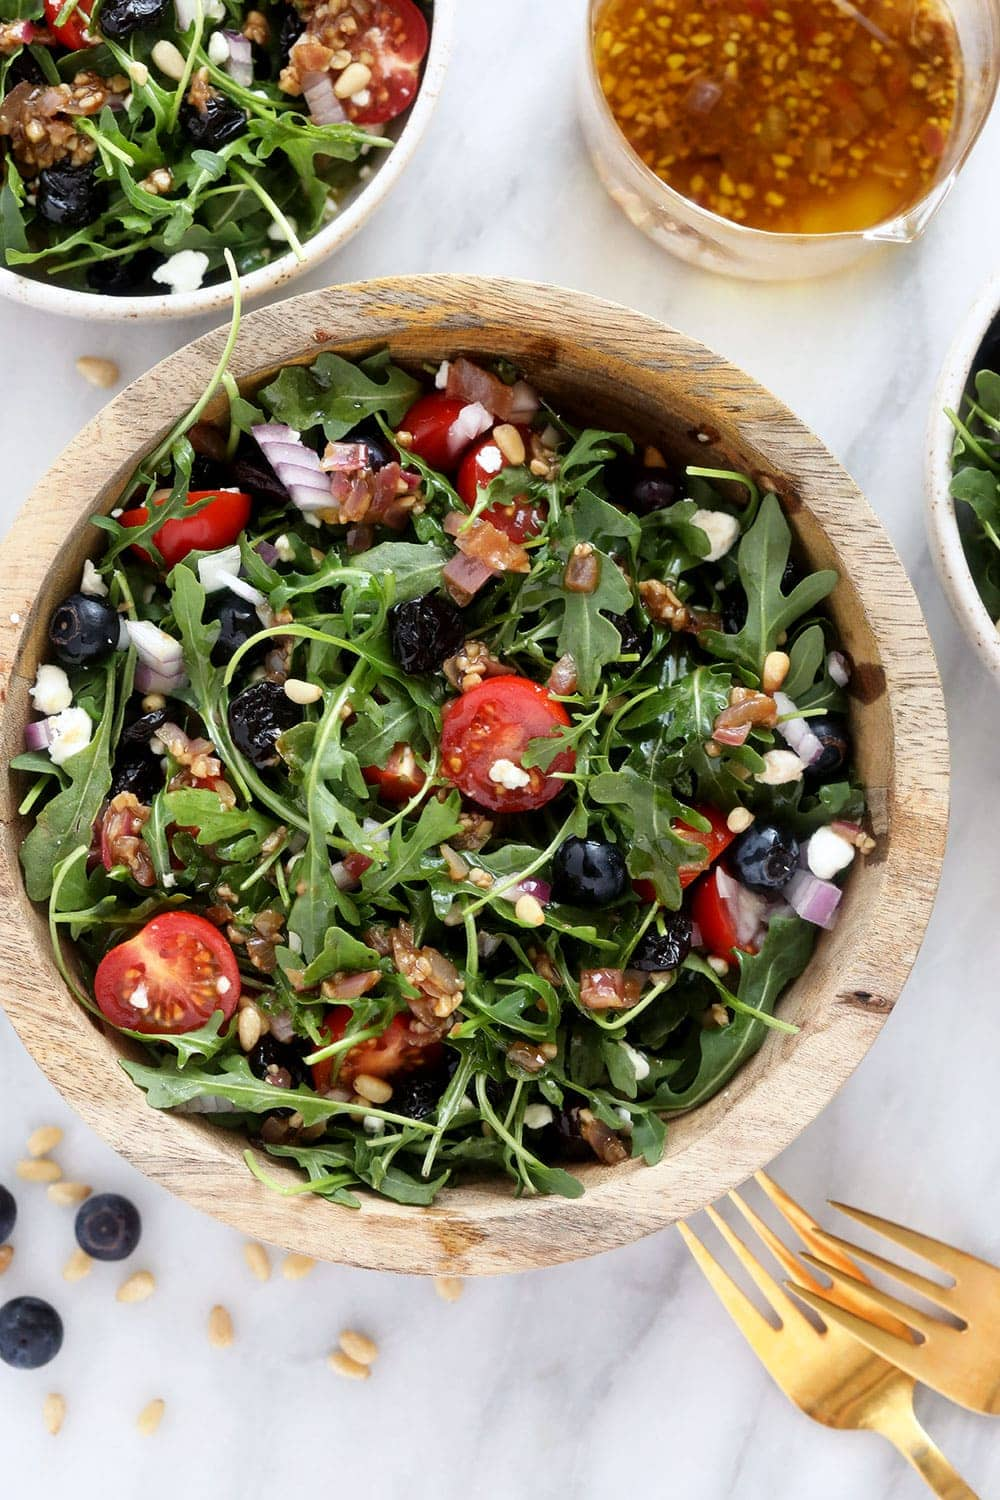 Arugula salad in a bowl